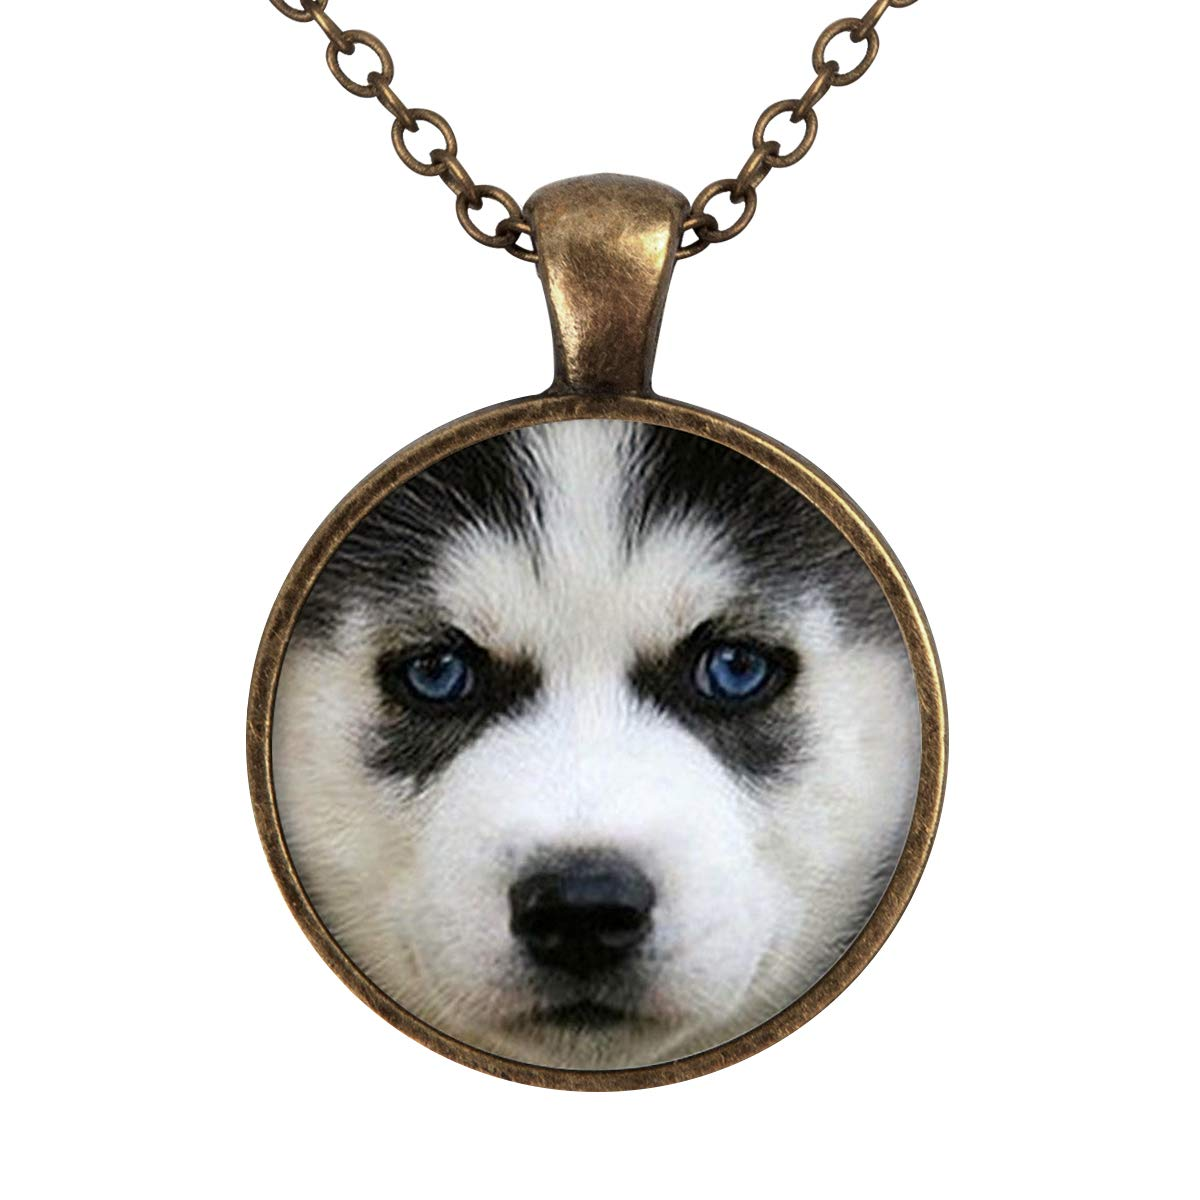 Lightrain Huskie Dog Face Pendant Necklace Vintage Bronze Chain Statement Necklace Handmade Jewelry Gifts